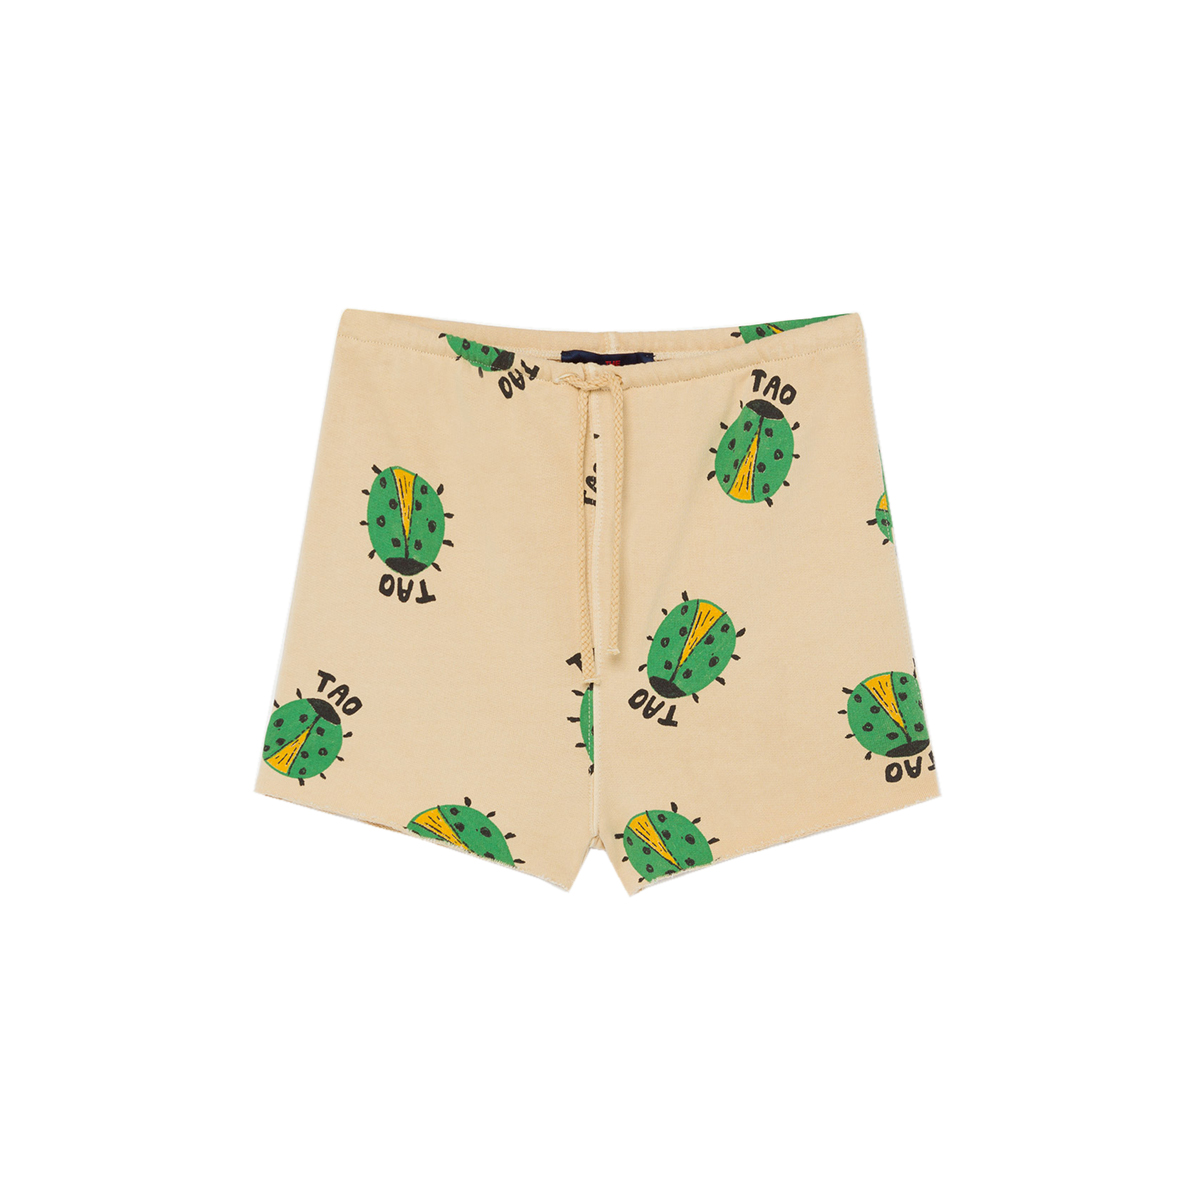 Animals Observatory SS20 Hedgehod Kid Shorts Green Ladybug